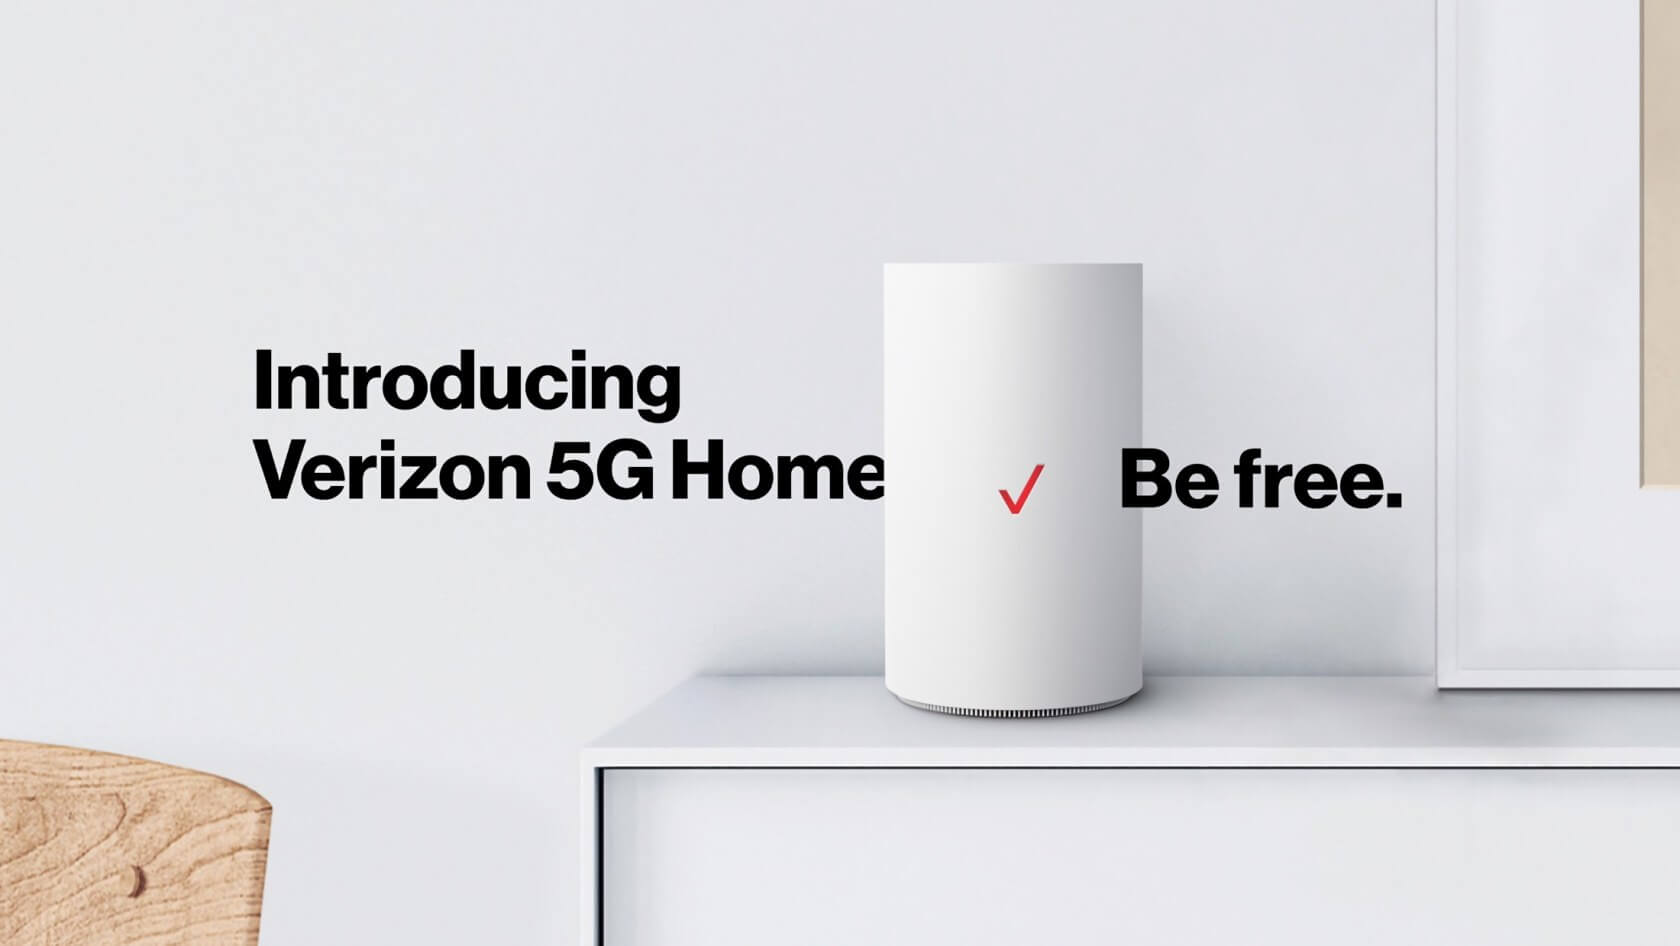 Verizon delays its '5G Home' Wi-Fi service rollout to the second half of 2020 - TechSpot